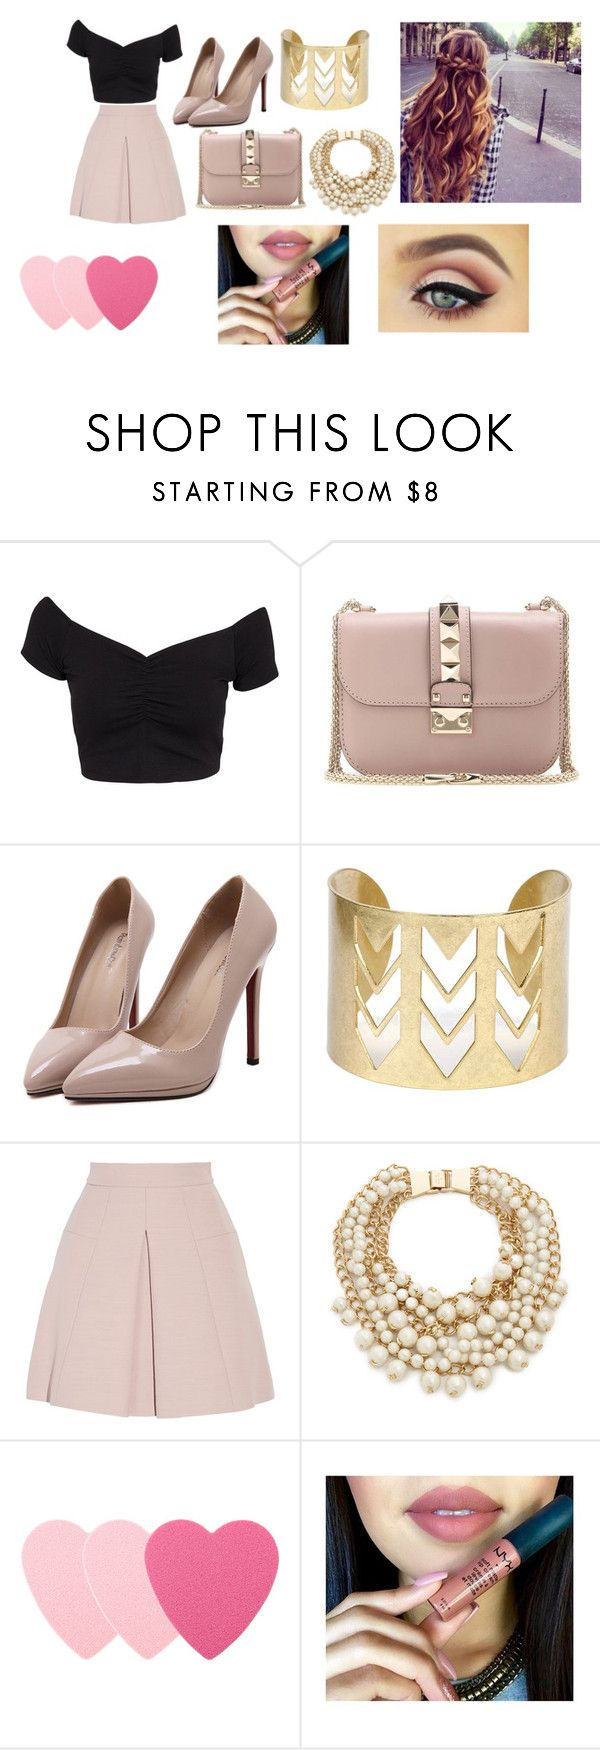 """Untitled #2146"" by bianca-salazar97 ❤ liked on Polyvore featuring NLY Trend, Valentino, WithChic, Alexander McQueen, Kate Spade and Sephora Collection"